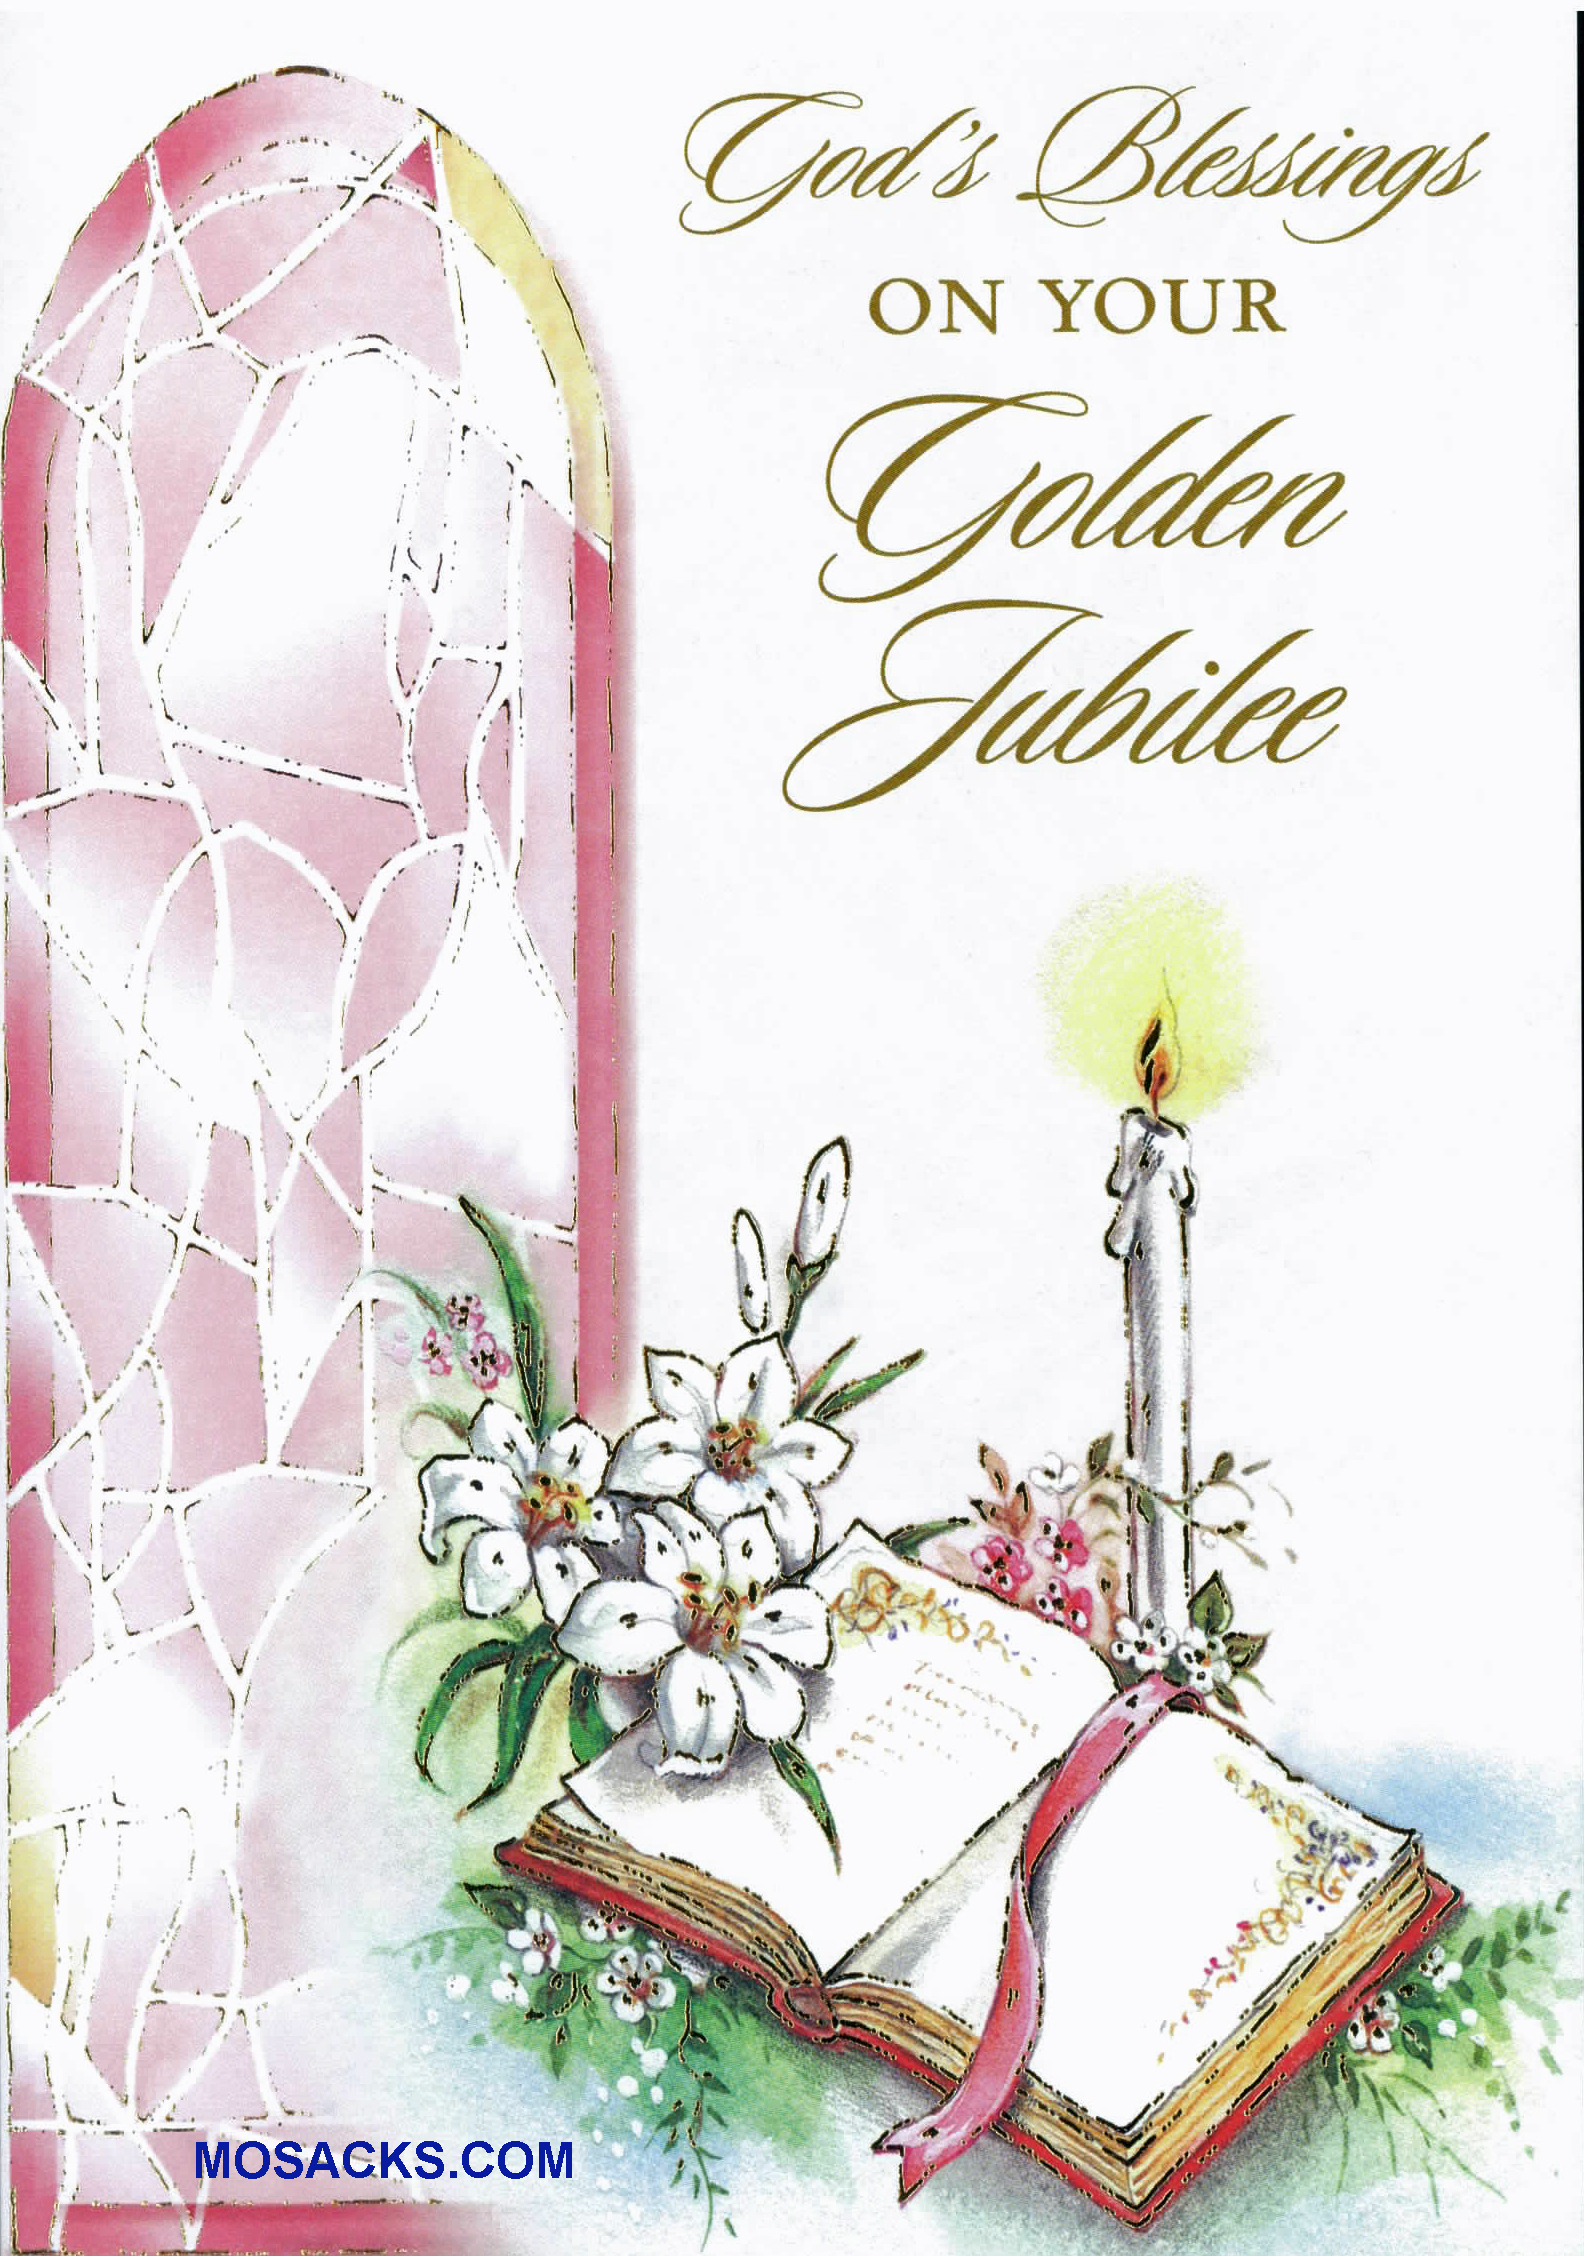 Angel kraft gift bag medium 353 5103630311 gods blessings on your golden jubilee greeting card jubg84288 inside message you have dedicated your life to christ and have followed your calling kristyandbryce Choice Image